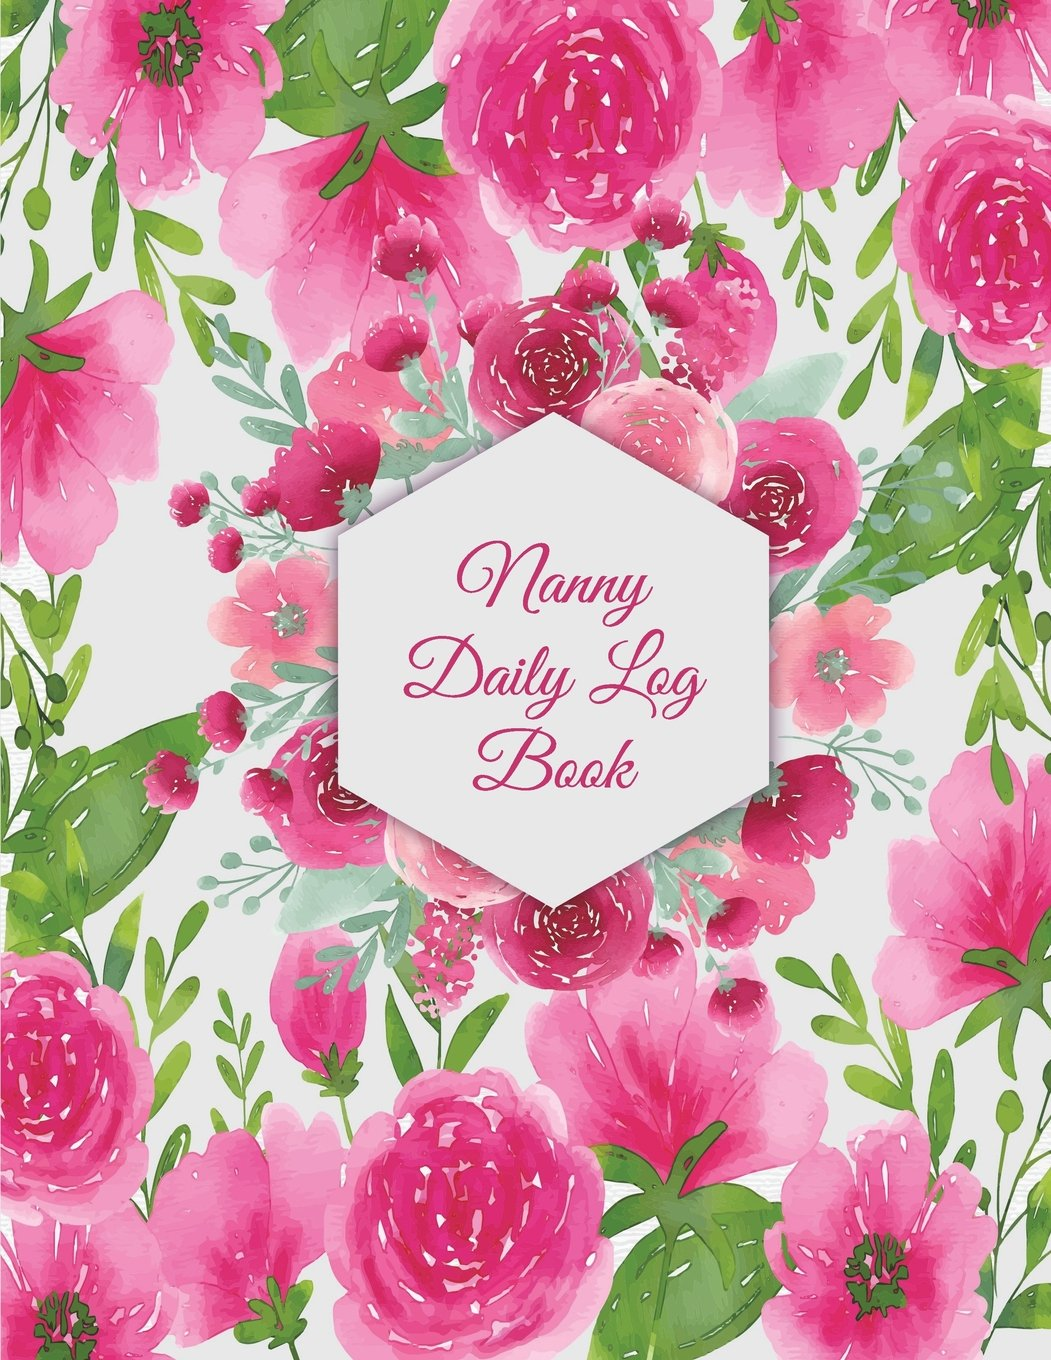 "Read Online Nanny Daily Log Book: Cute Floral, Nanny Journal,Kids Record, Kids Healthy Activities Record Large Print 8.5"" x 11"" Baby Daily Log Feed, Diapers, Sleep, Health Care, To Do List and Notes pdf epub"